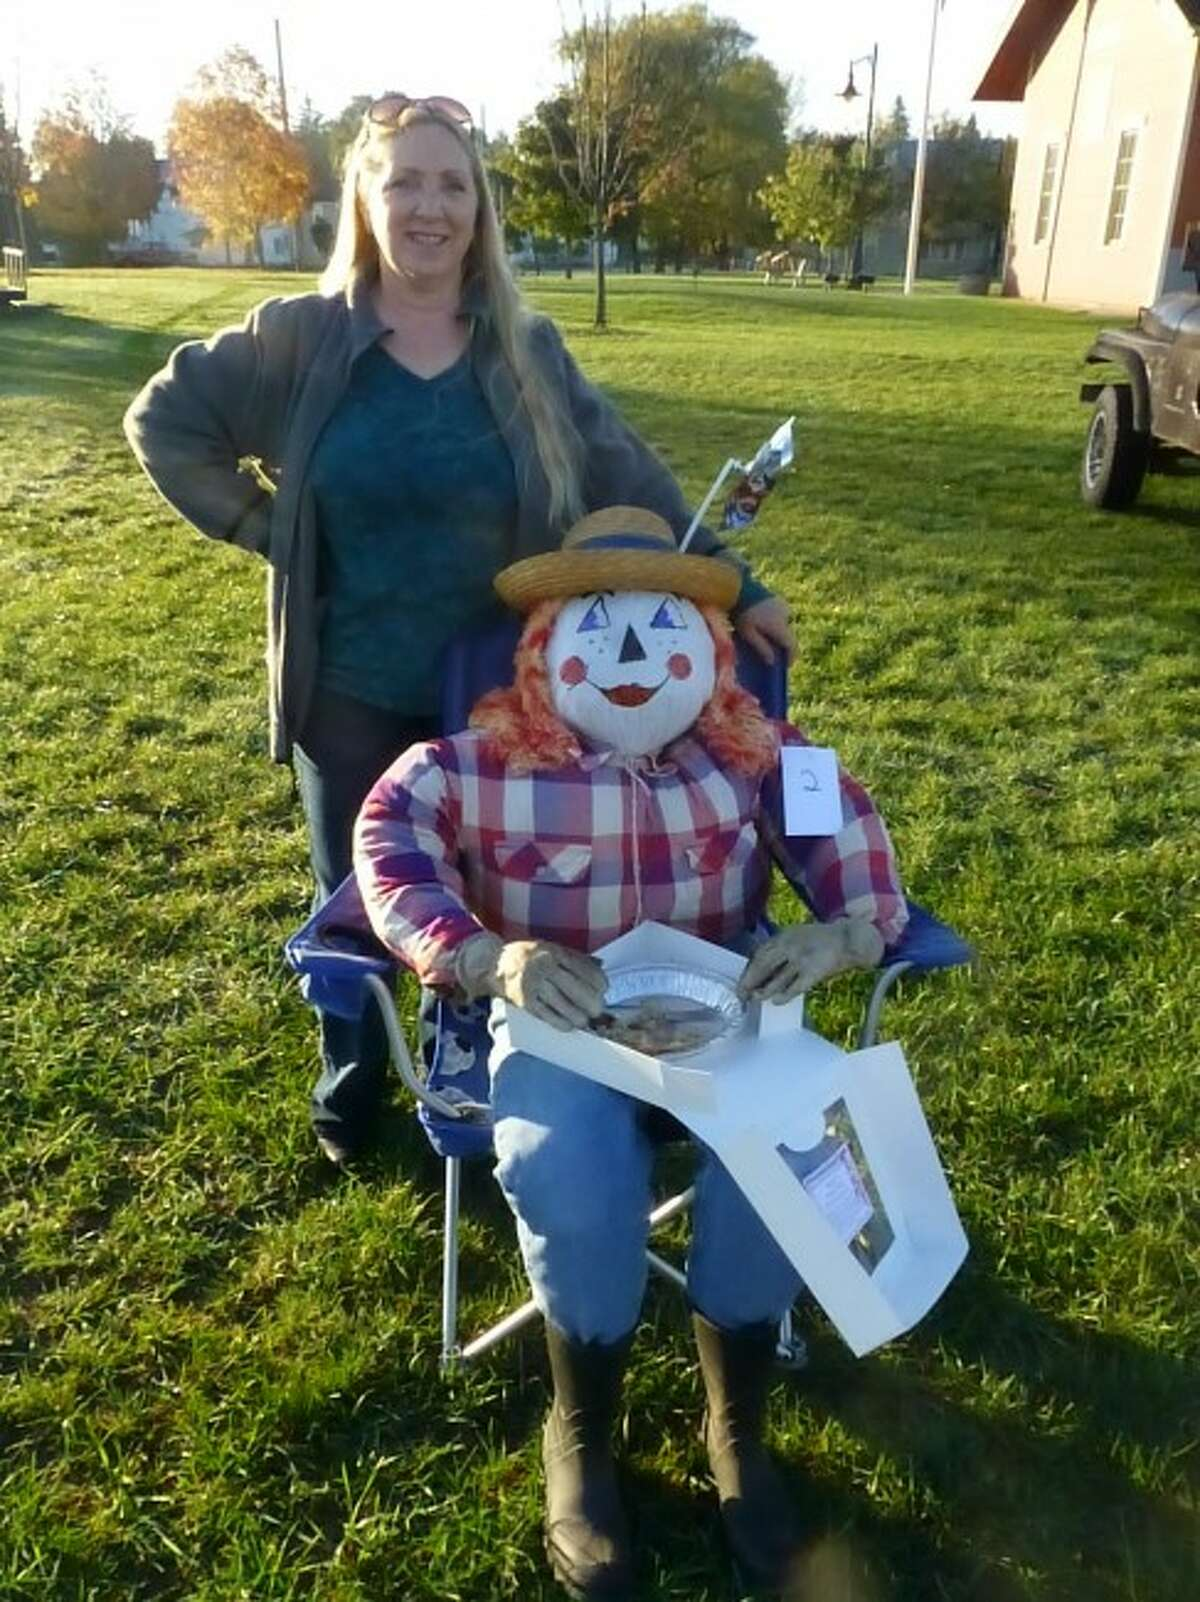 Penny Nichols-Whitehead took home the winning prize for her scarecrow during the Evart Farmers Market scarecrow contest that took place on Saturday, Oct. 12. (Courtesy photo)